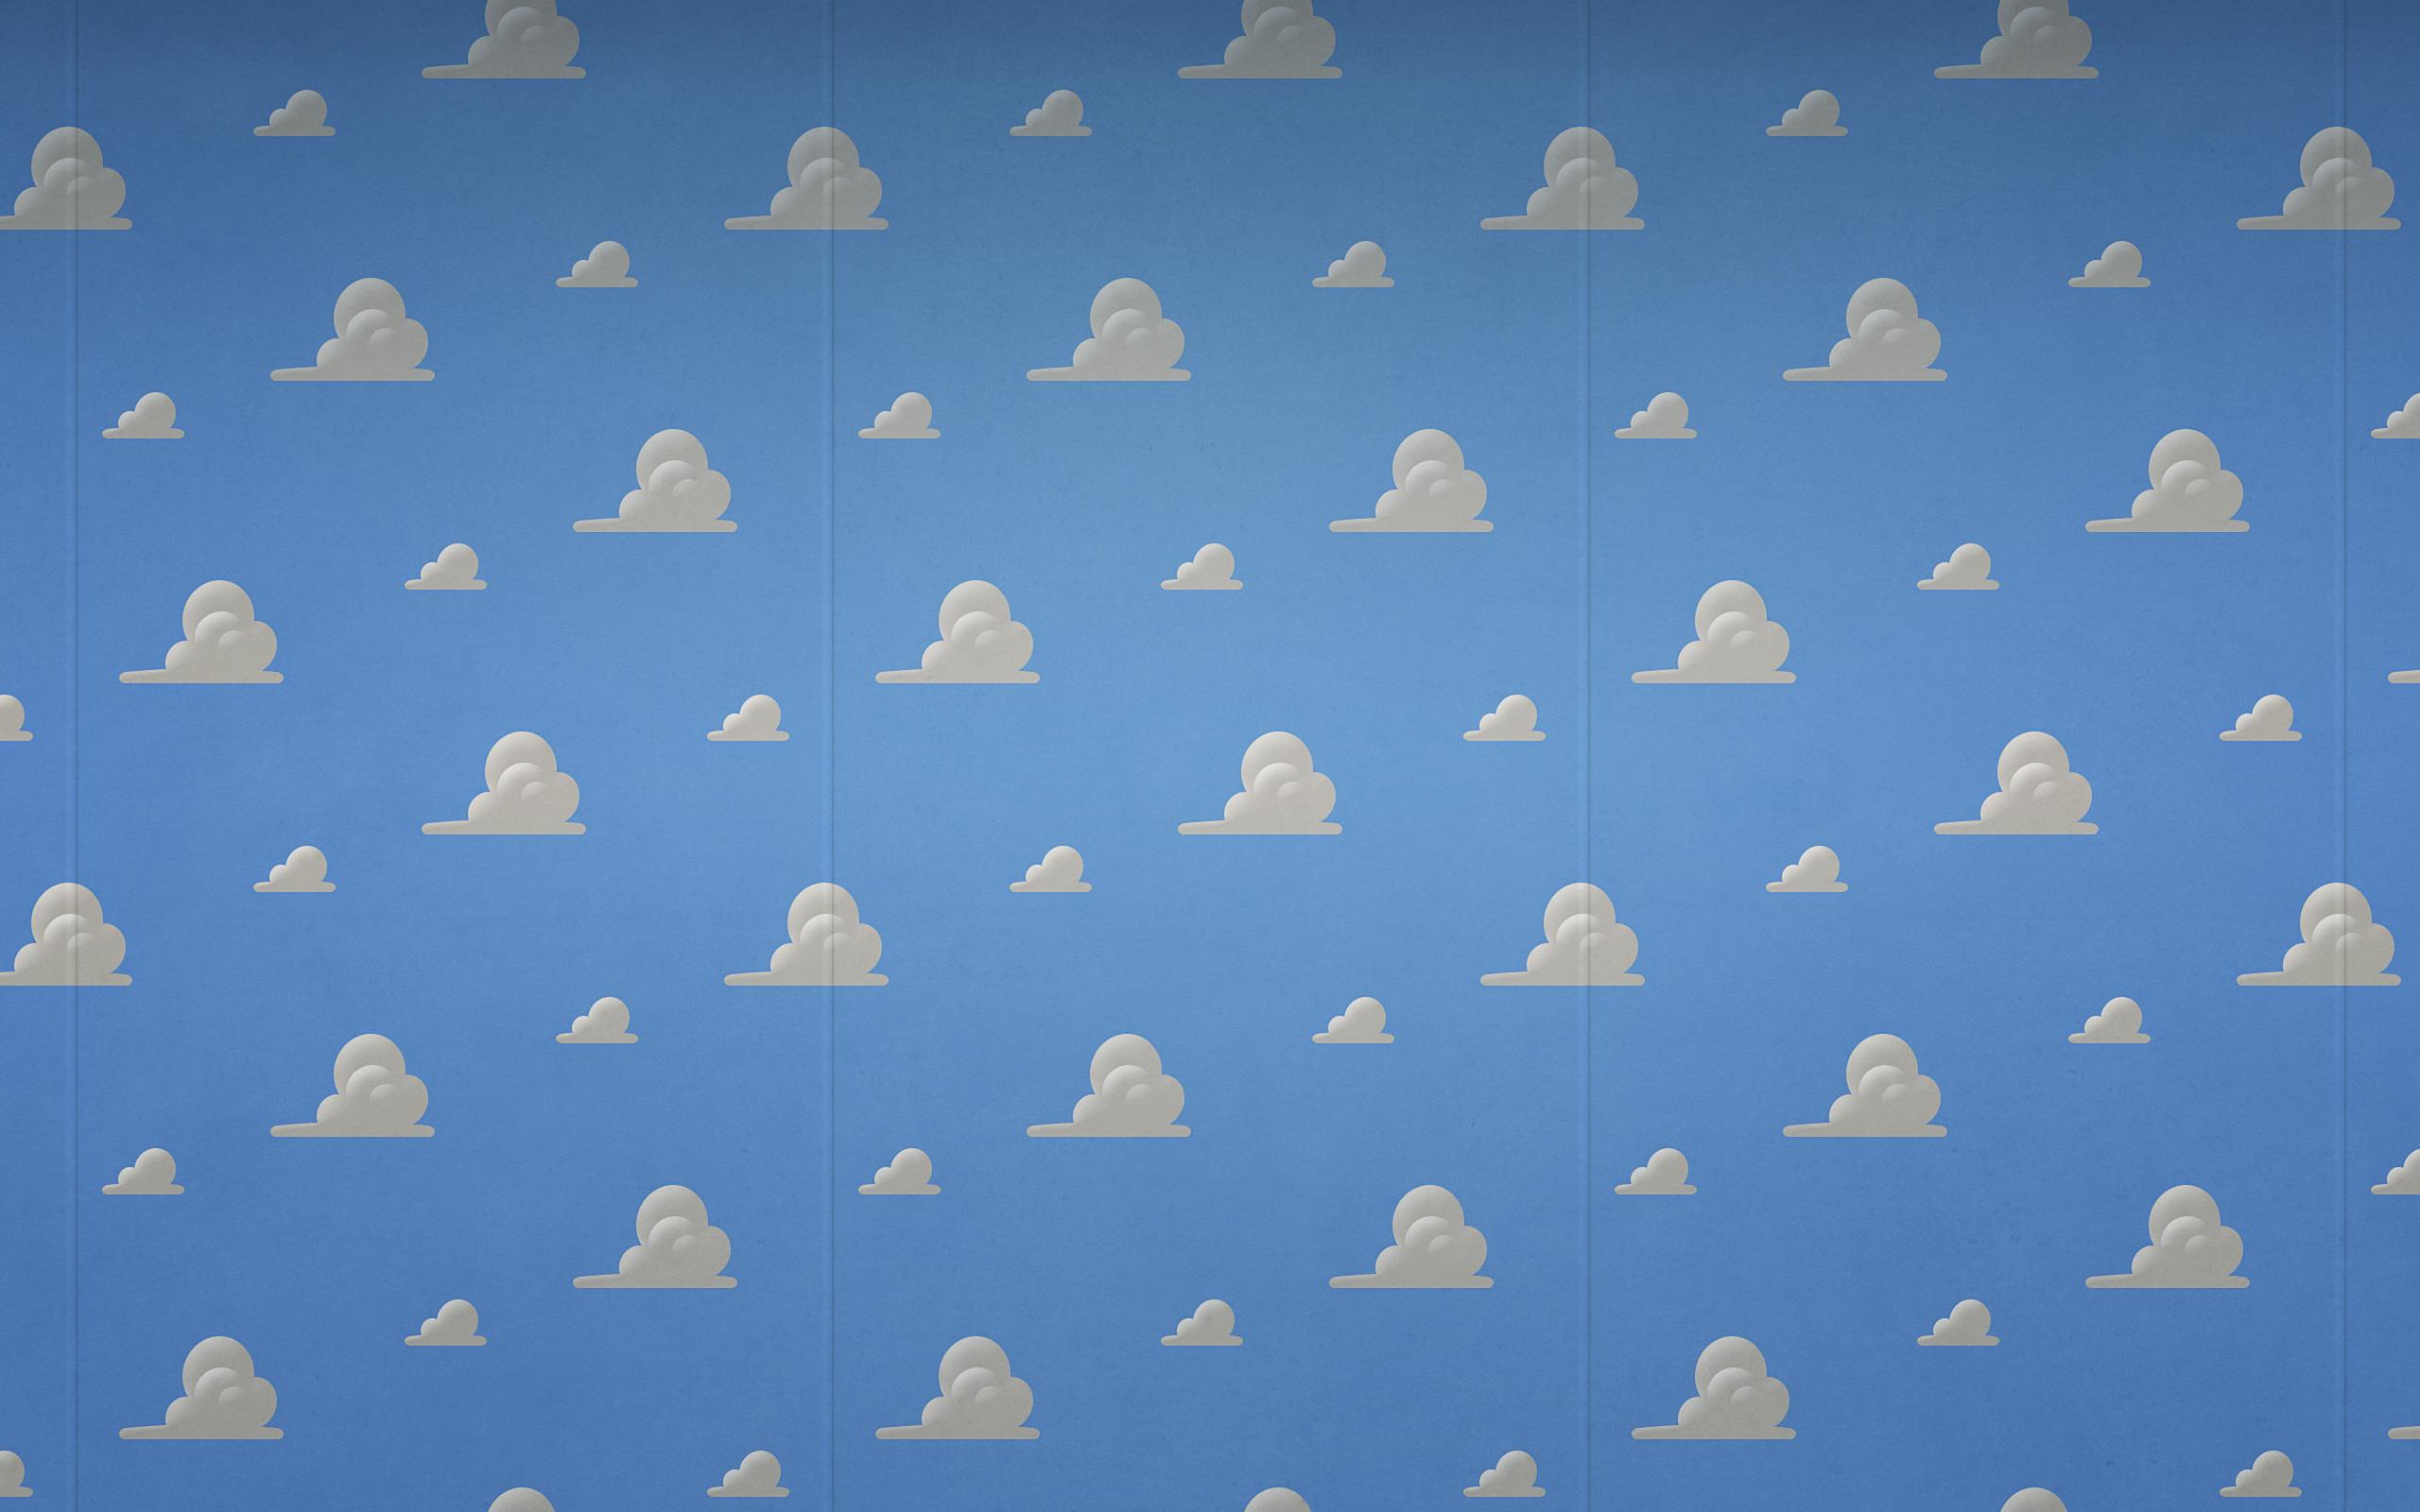 wallpaper clouds promotion shop - photo #28